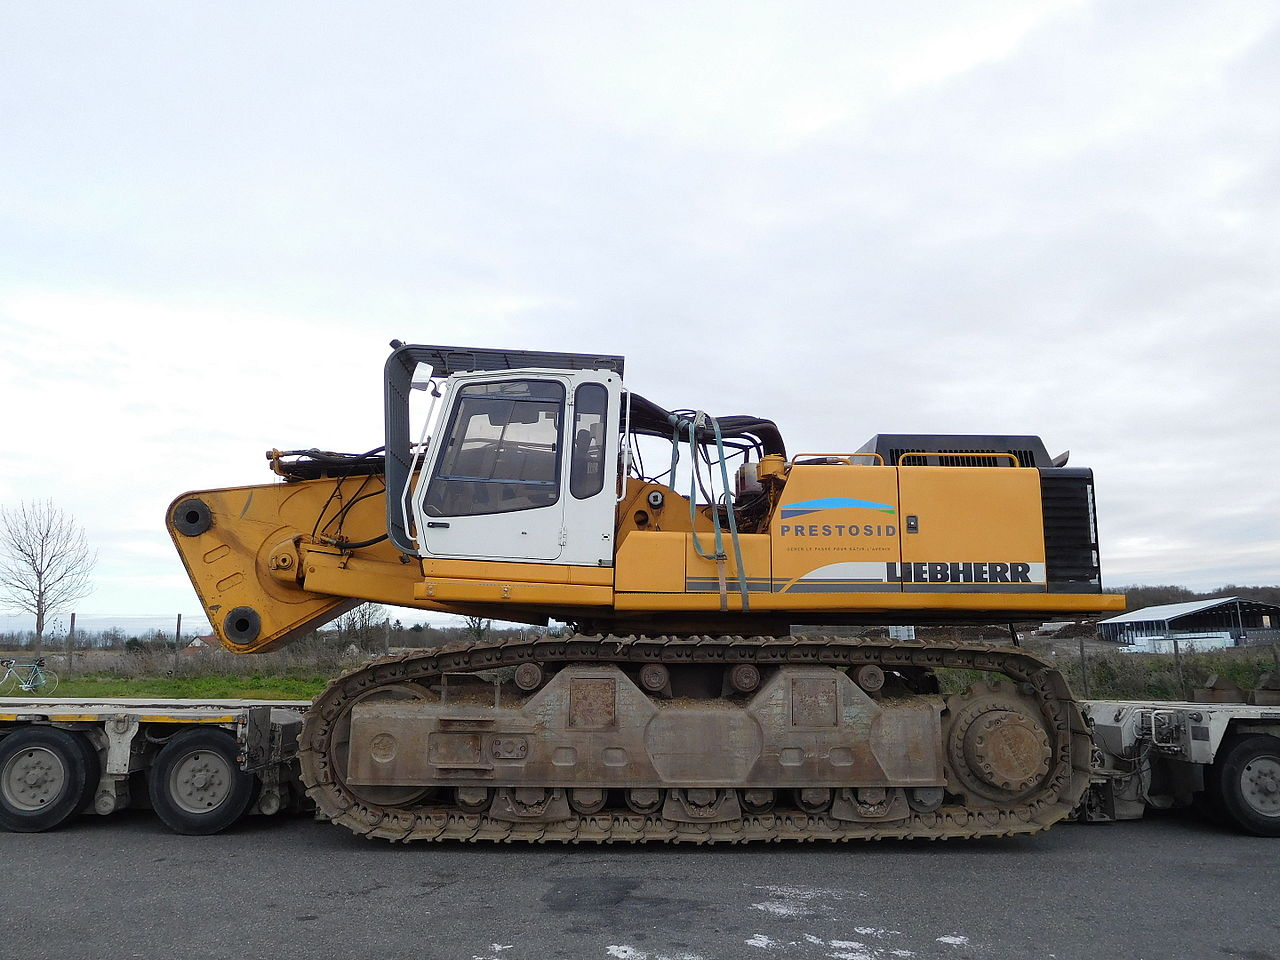 Goldhoffer trailer rimorchi 1280px-Liebherr_tracked_vehicle_on_Goldhofer_trailer_-_right_view3